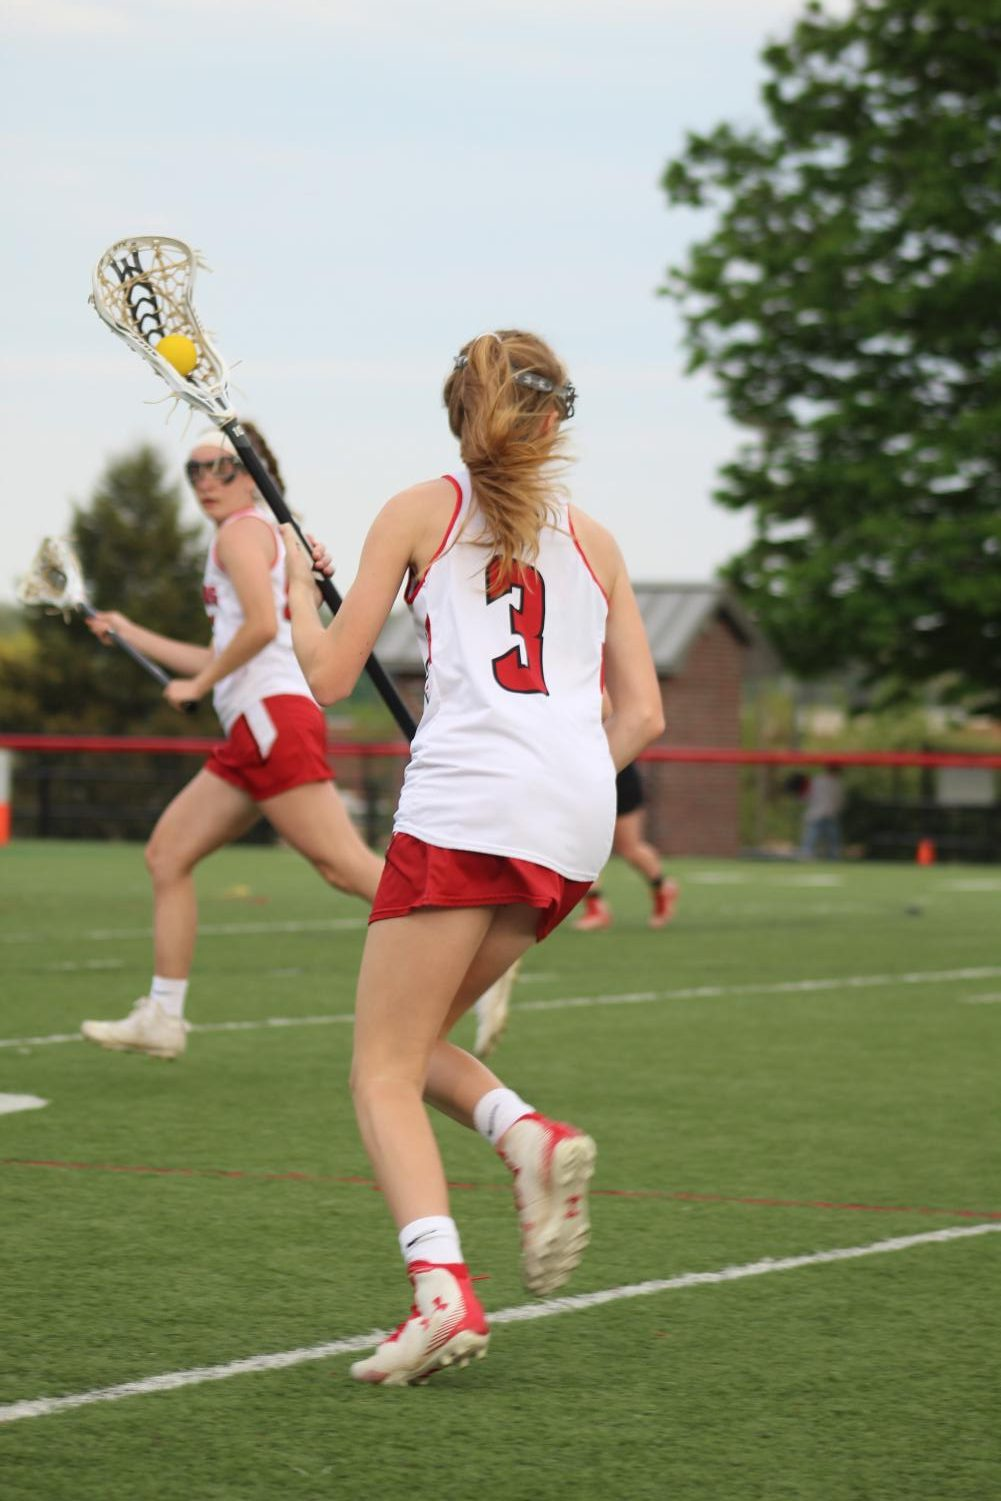 Freshman+Addison+Roeder+carries+the+ball+down+the+field+looking+to+set+up+a+scoring+play.++Roeder+ended+the+game+with+two+goals+and+two+assists.+Photograph+by+Stephanie+Graffin